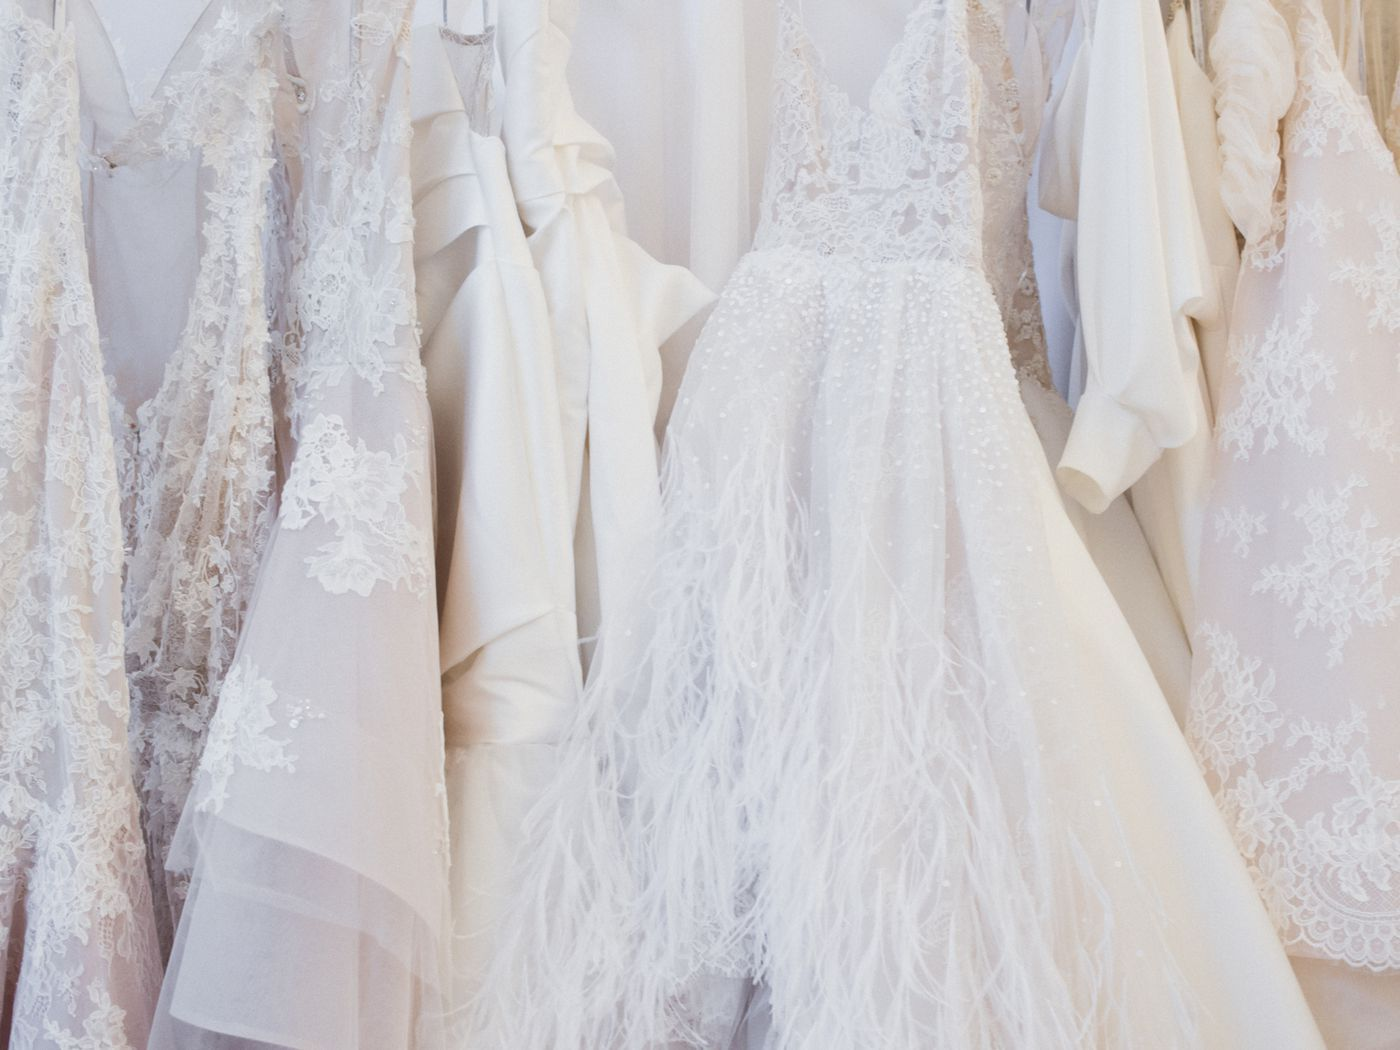 Where to Resell Your Wedding Dress Wedding dress resale